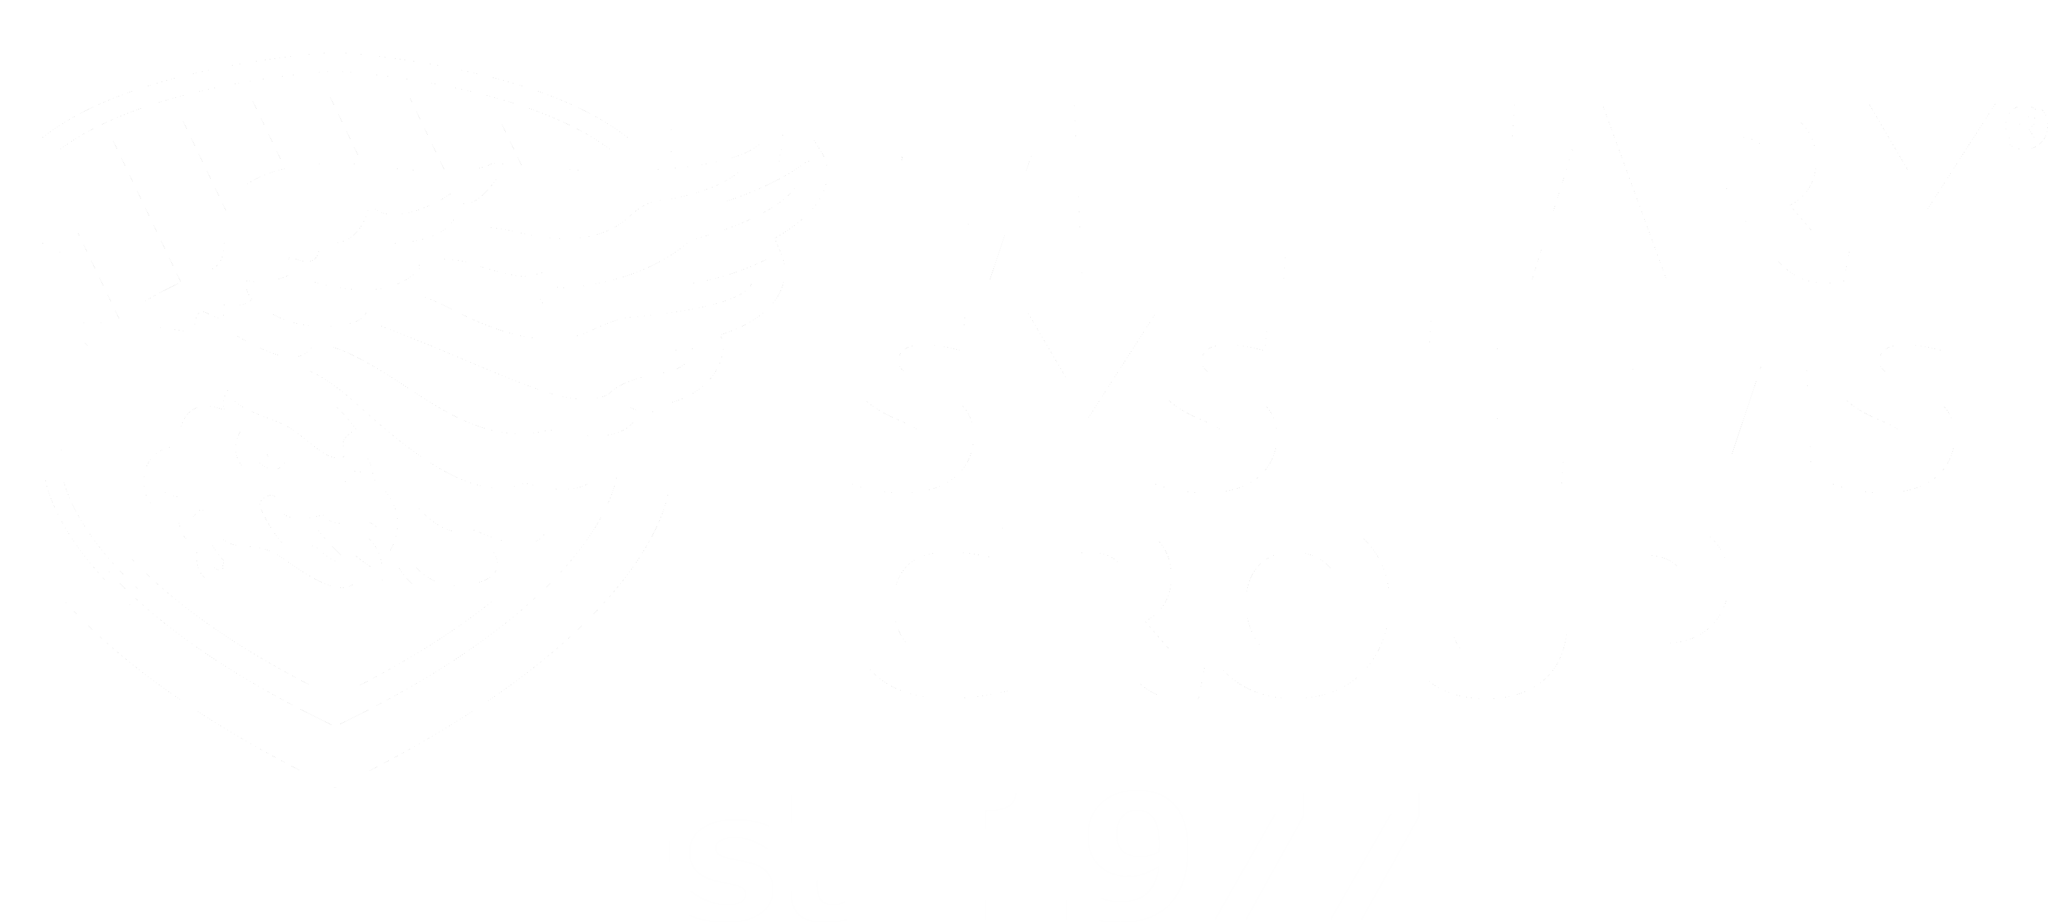 military systems group white logo w Est Date